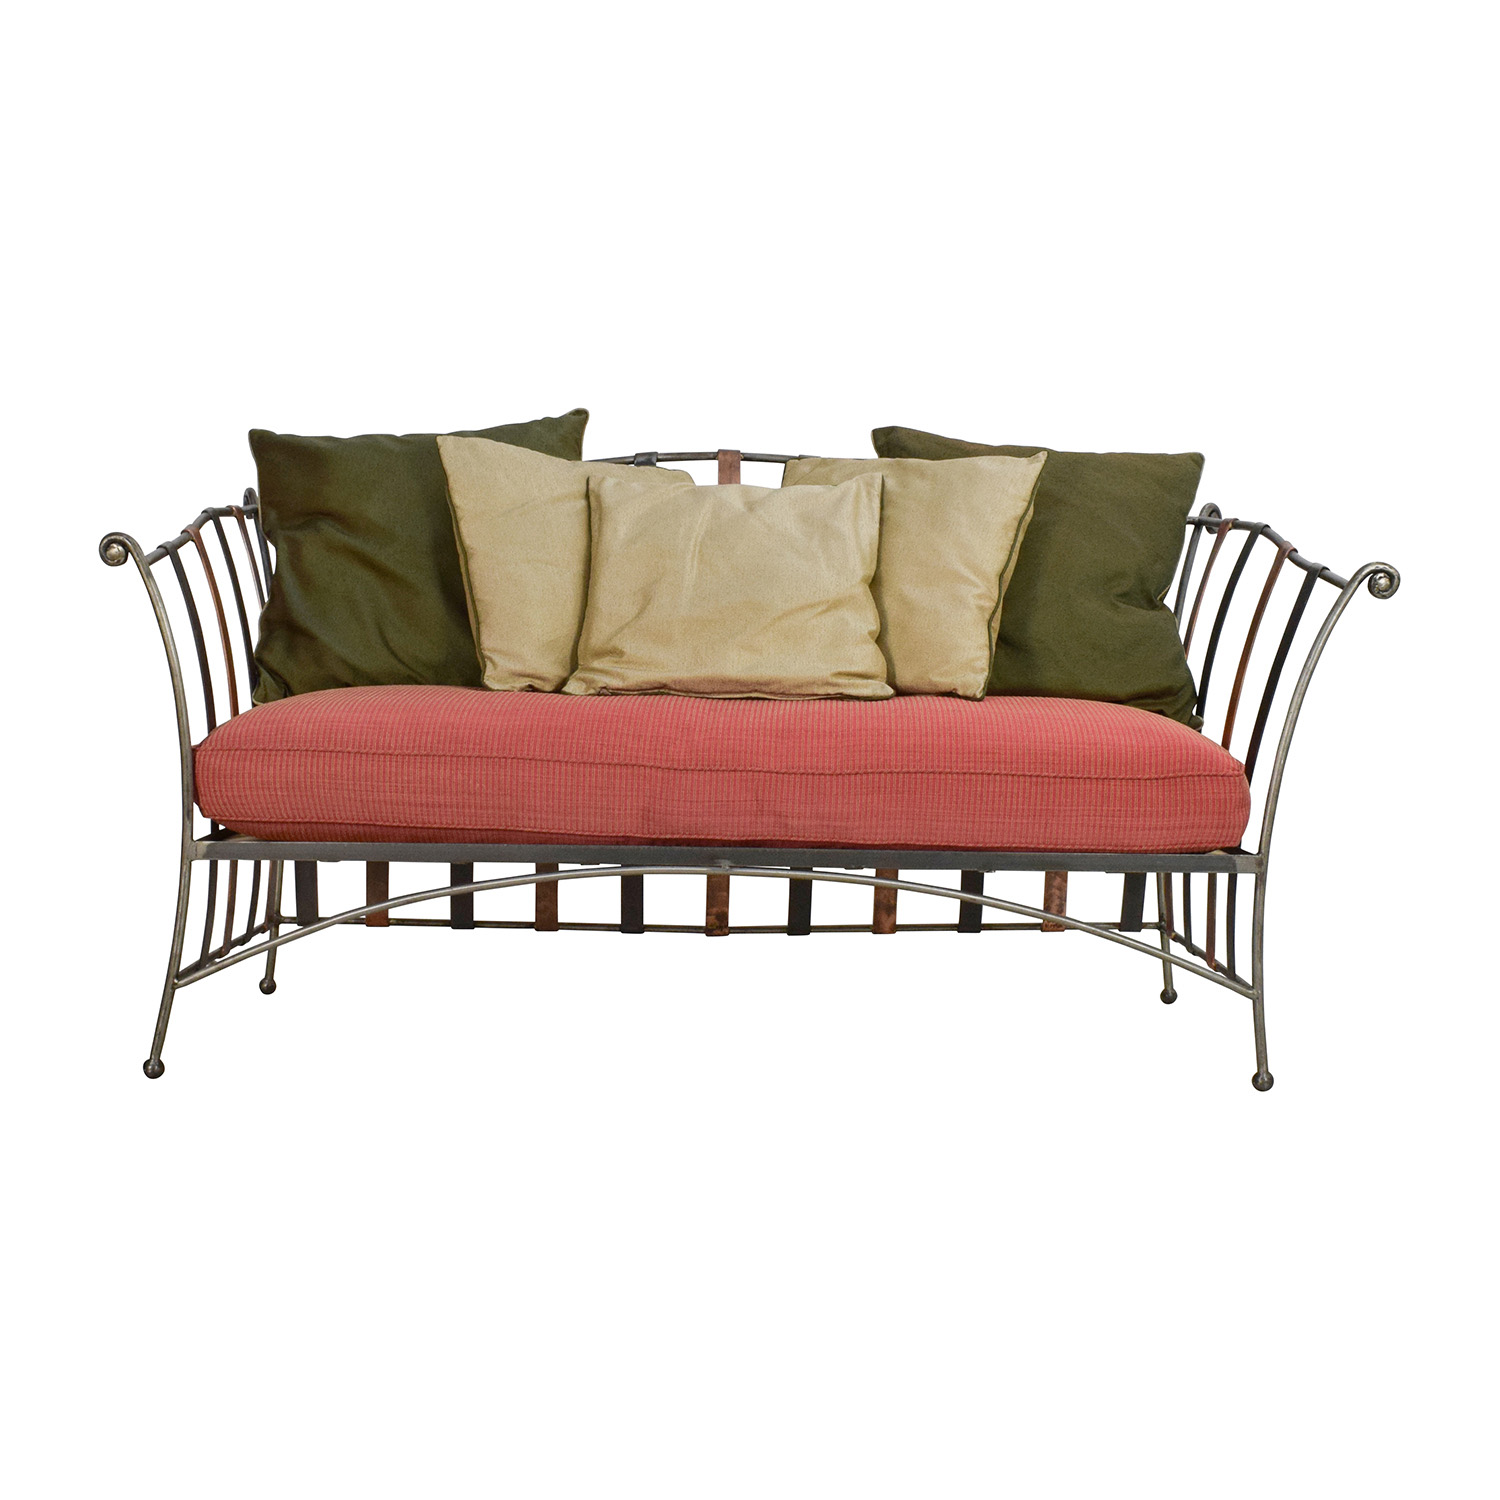 Custom Made Wrought Iron Daybed Sofa With Silk Pillows on sale